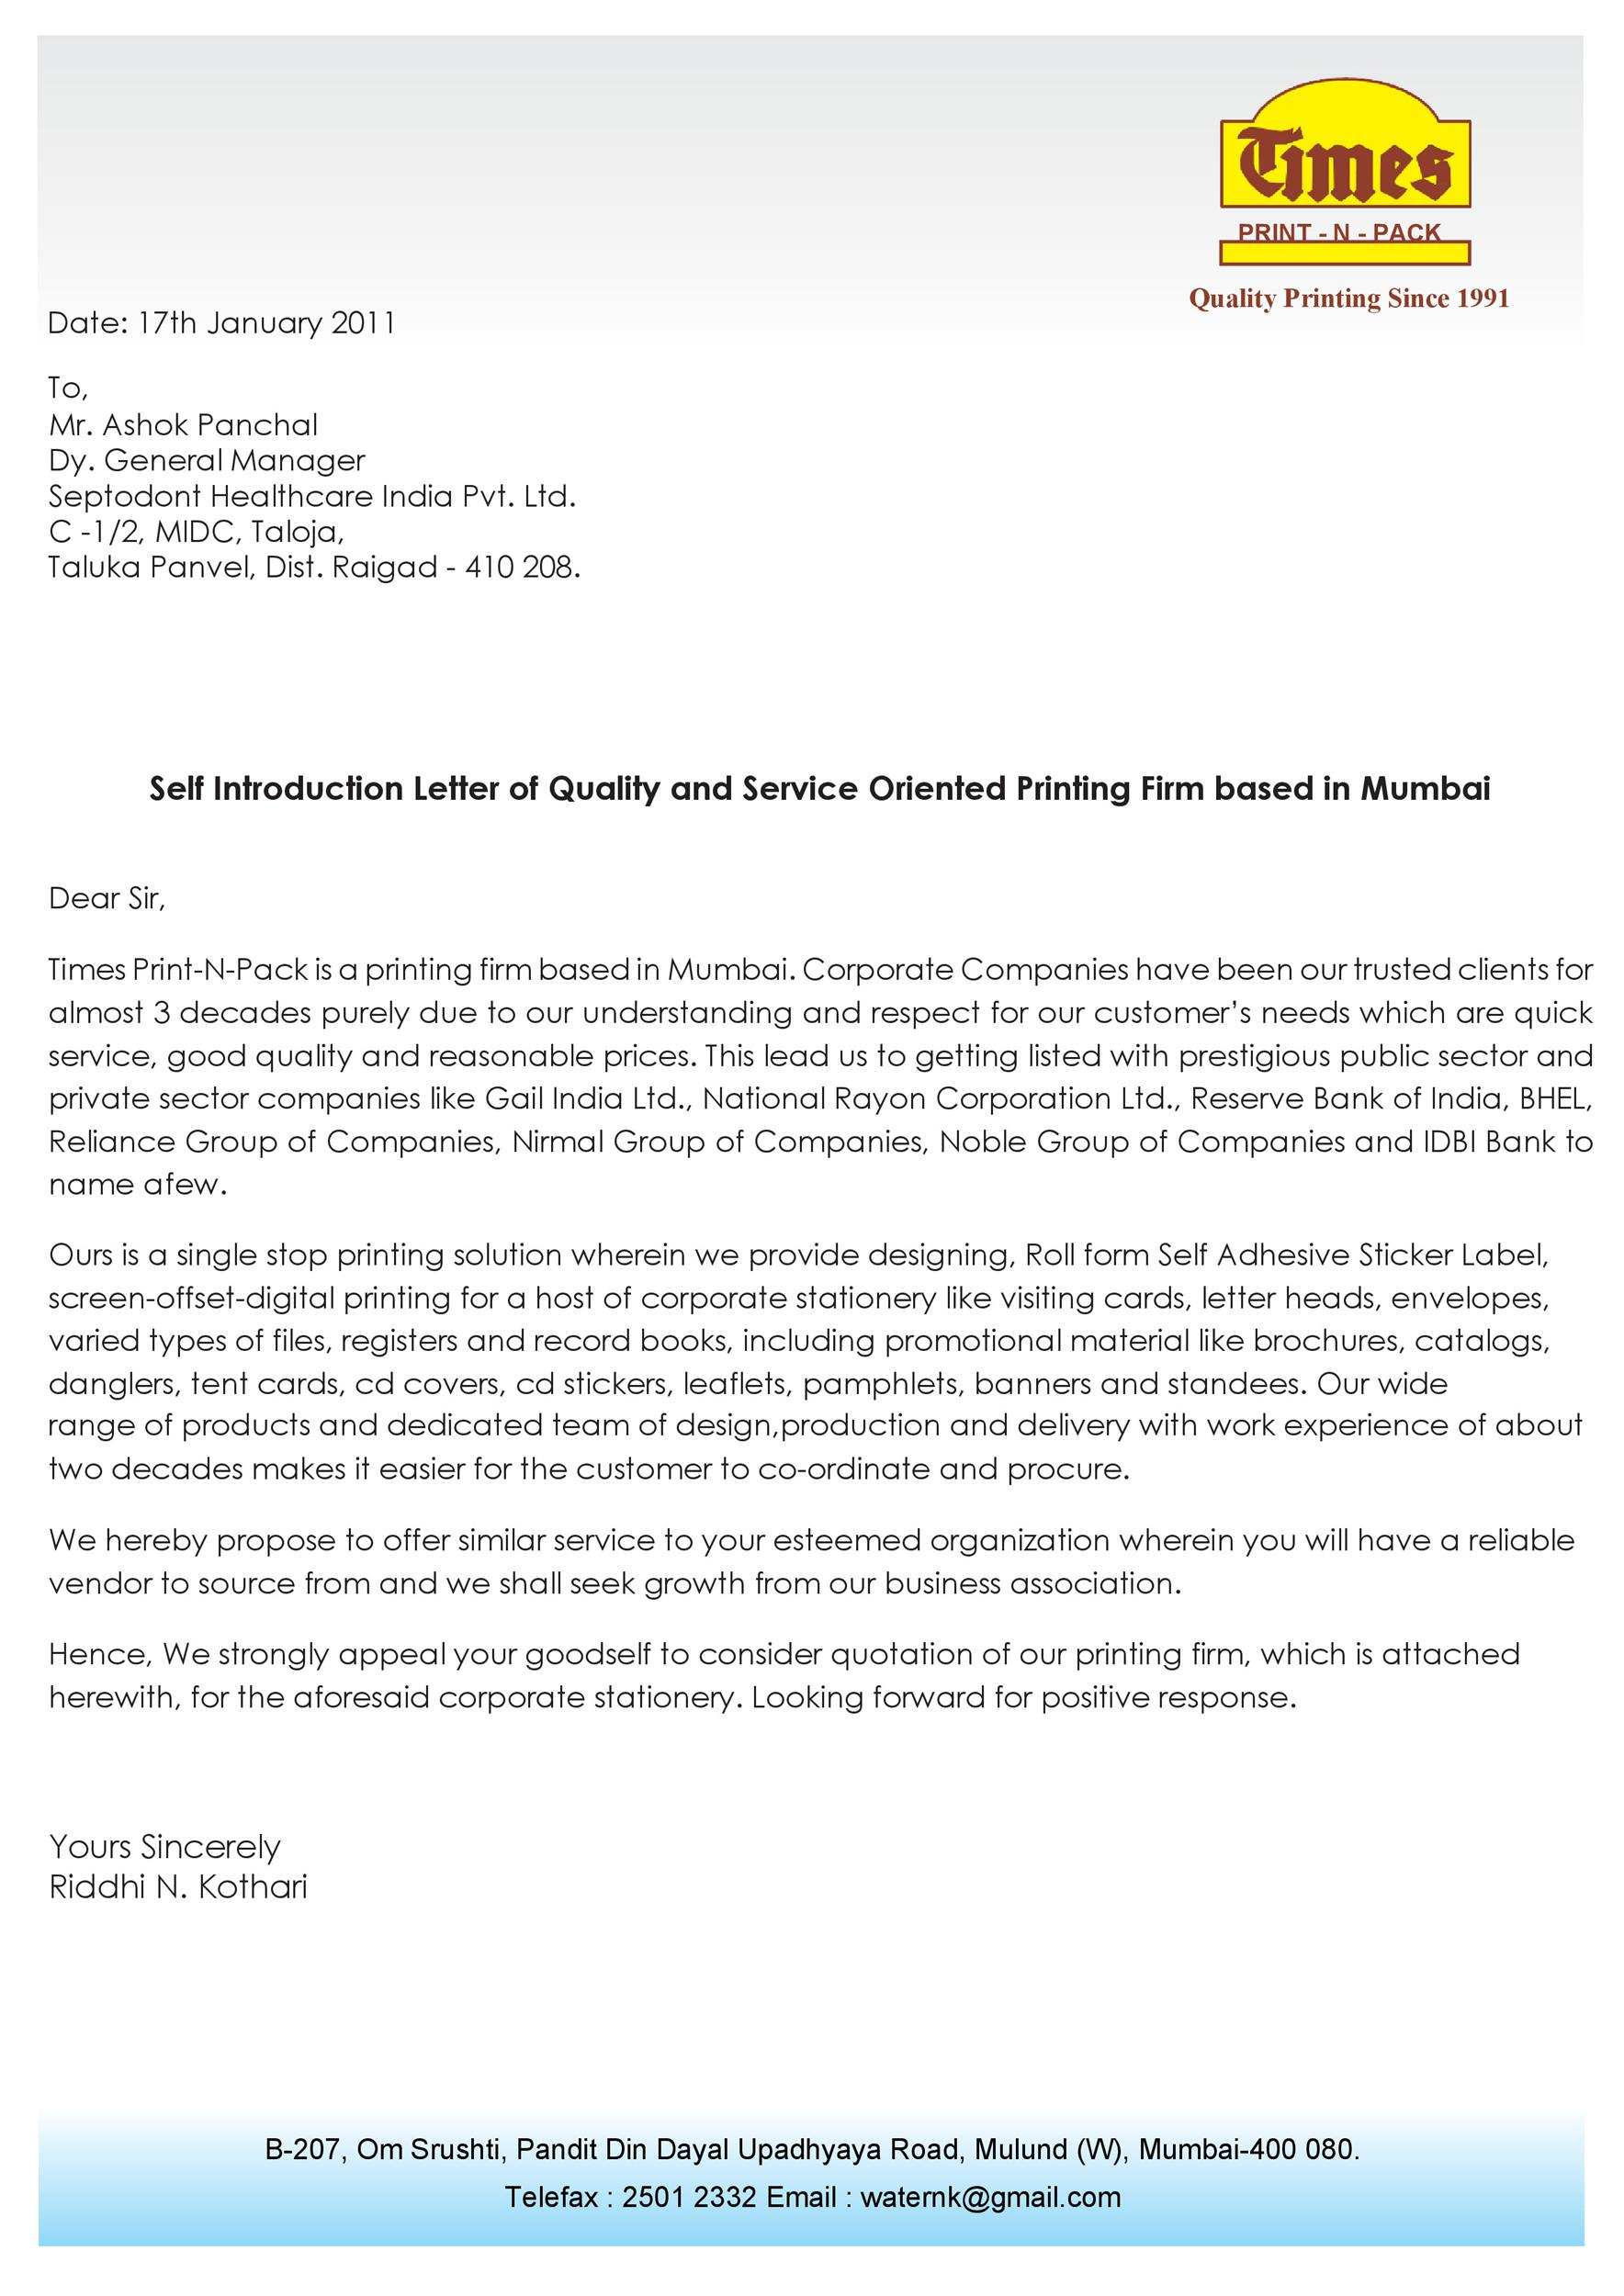 Free business introduction letter 26